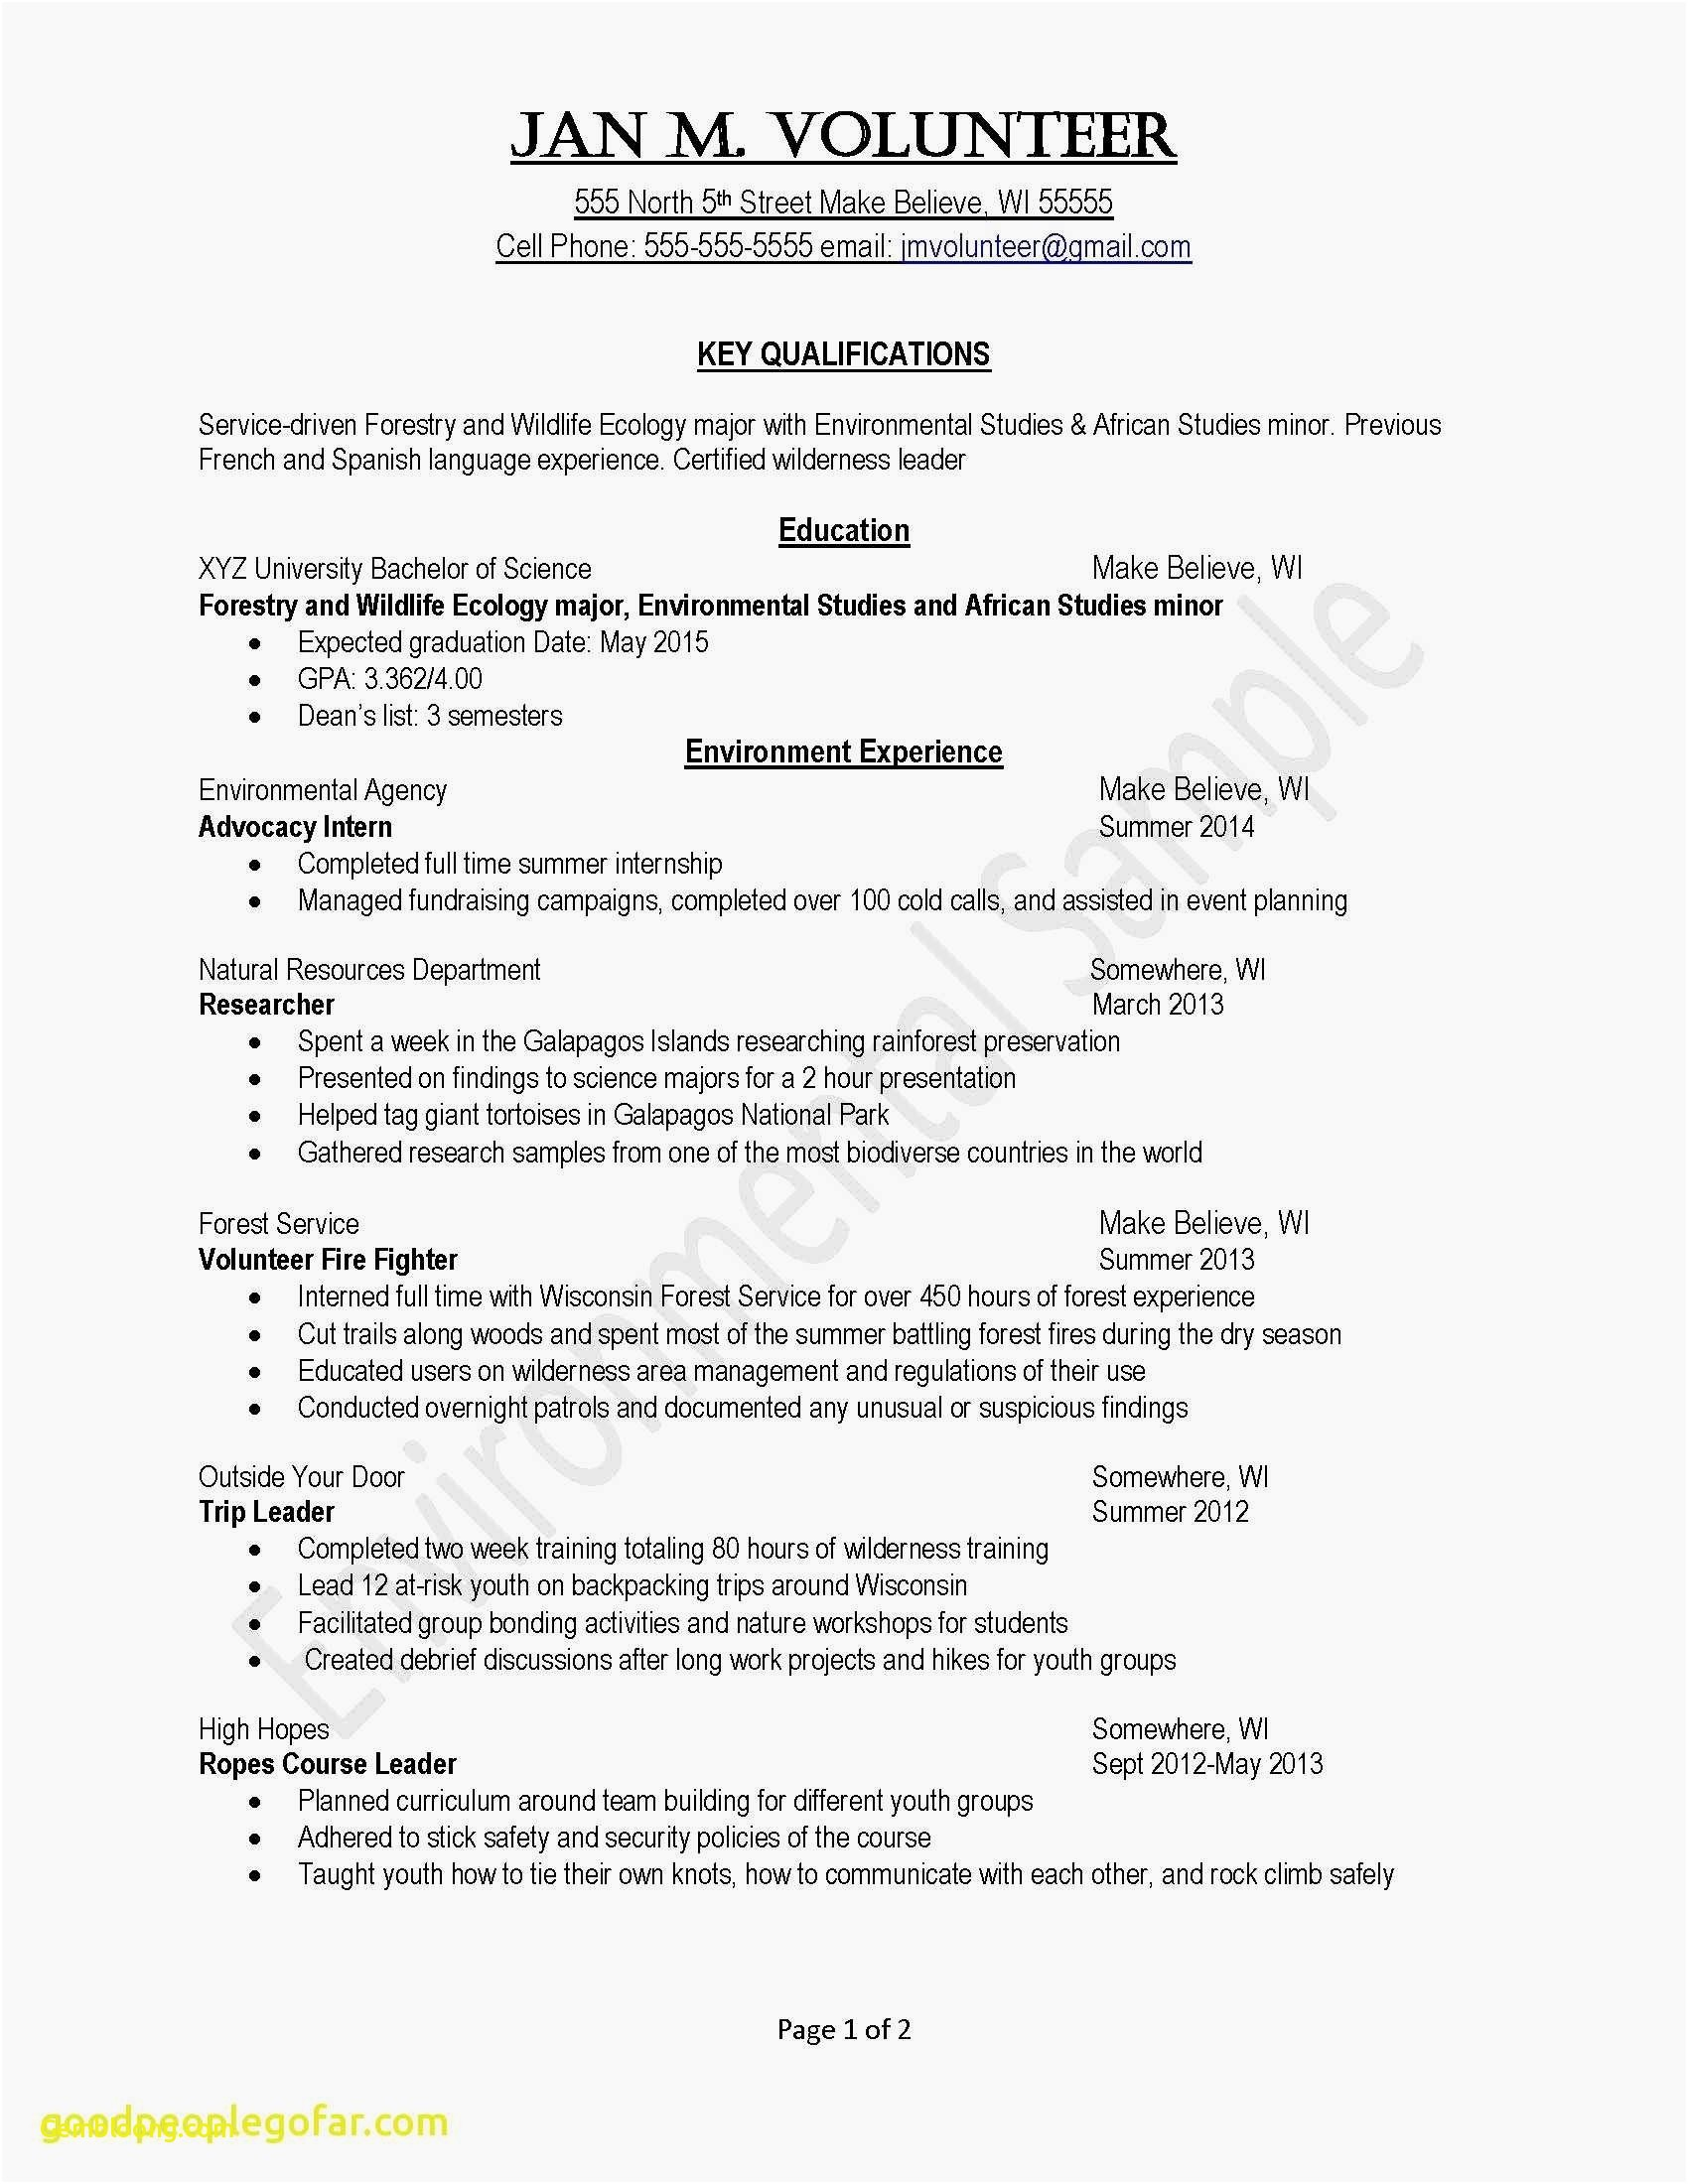 How To Type A Resume How To Type Resume Beautiful Download Fresh Types Resumes Of How To Type Resume how to type a resume|wikiresume.com